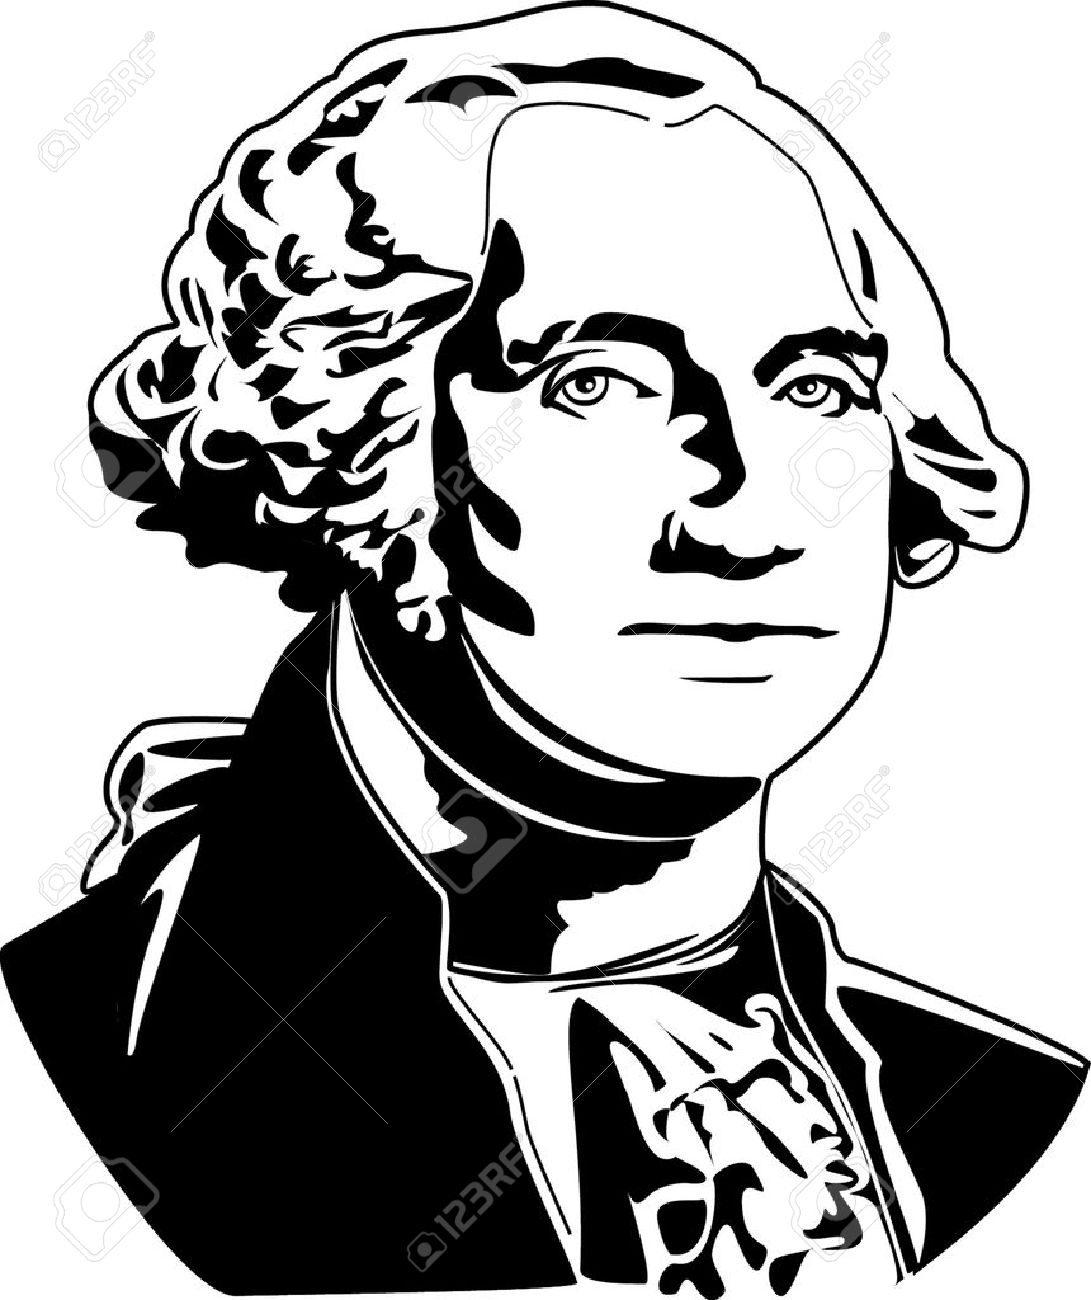 1091x1300 Black And White Vector Illustration Of George Washington Royalty